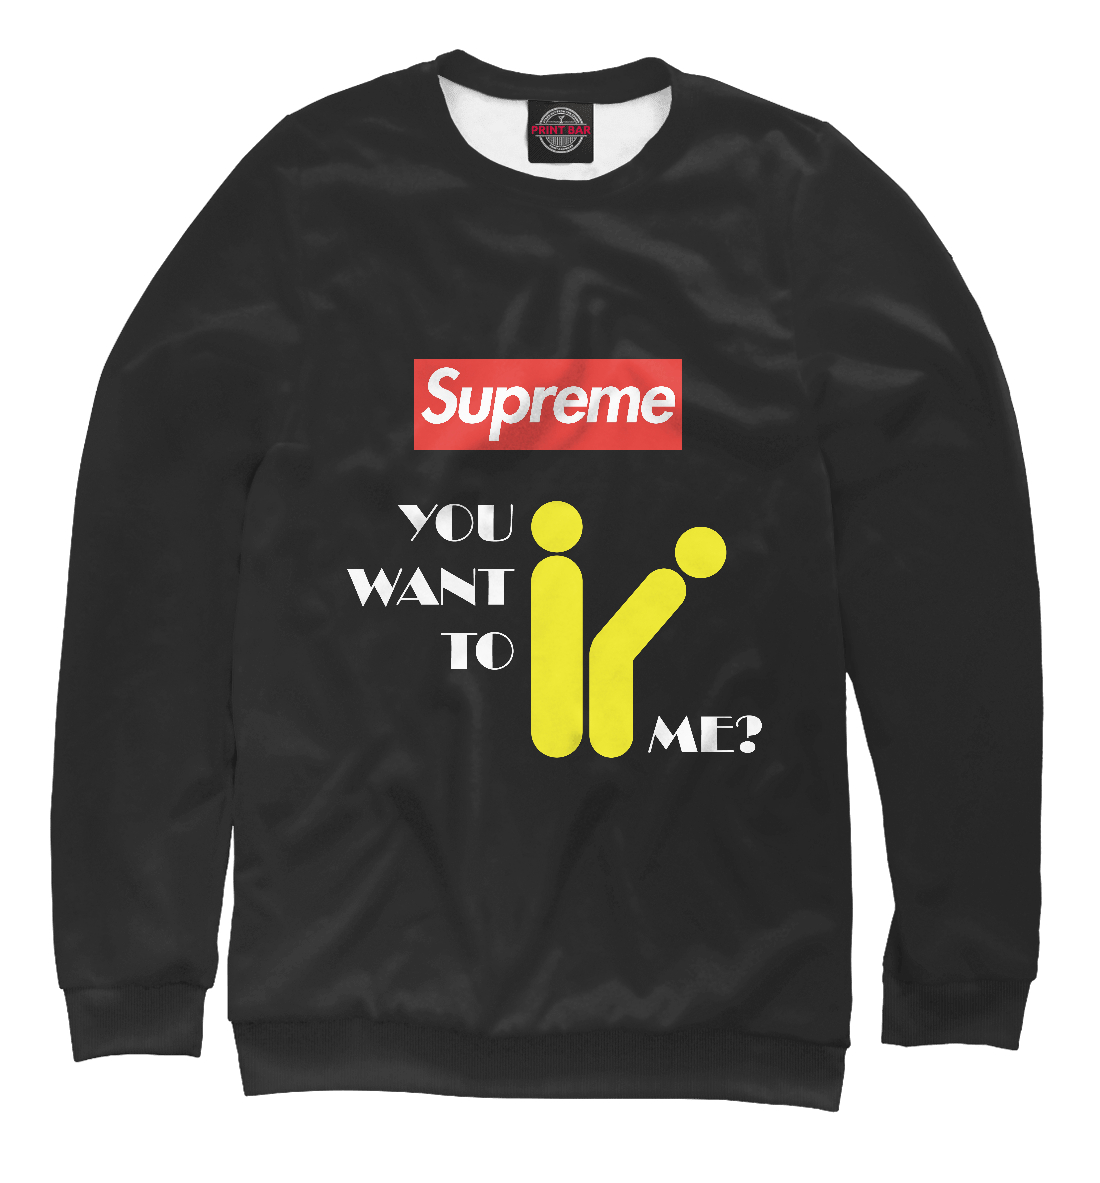 Supreme you want to me?